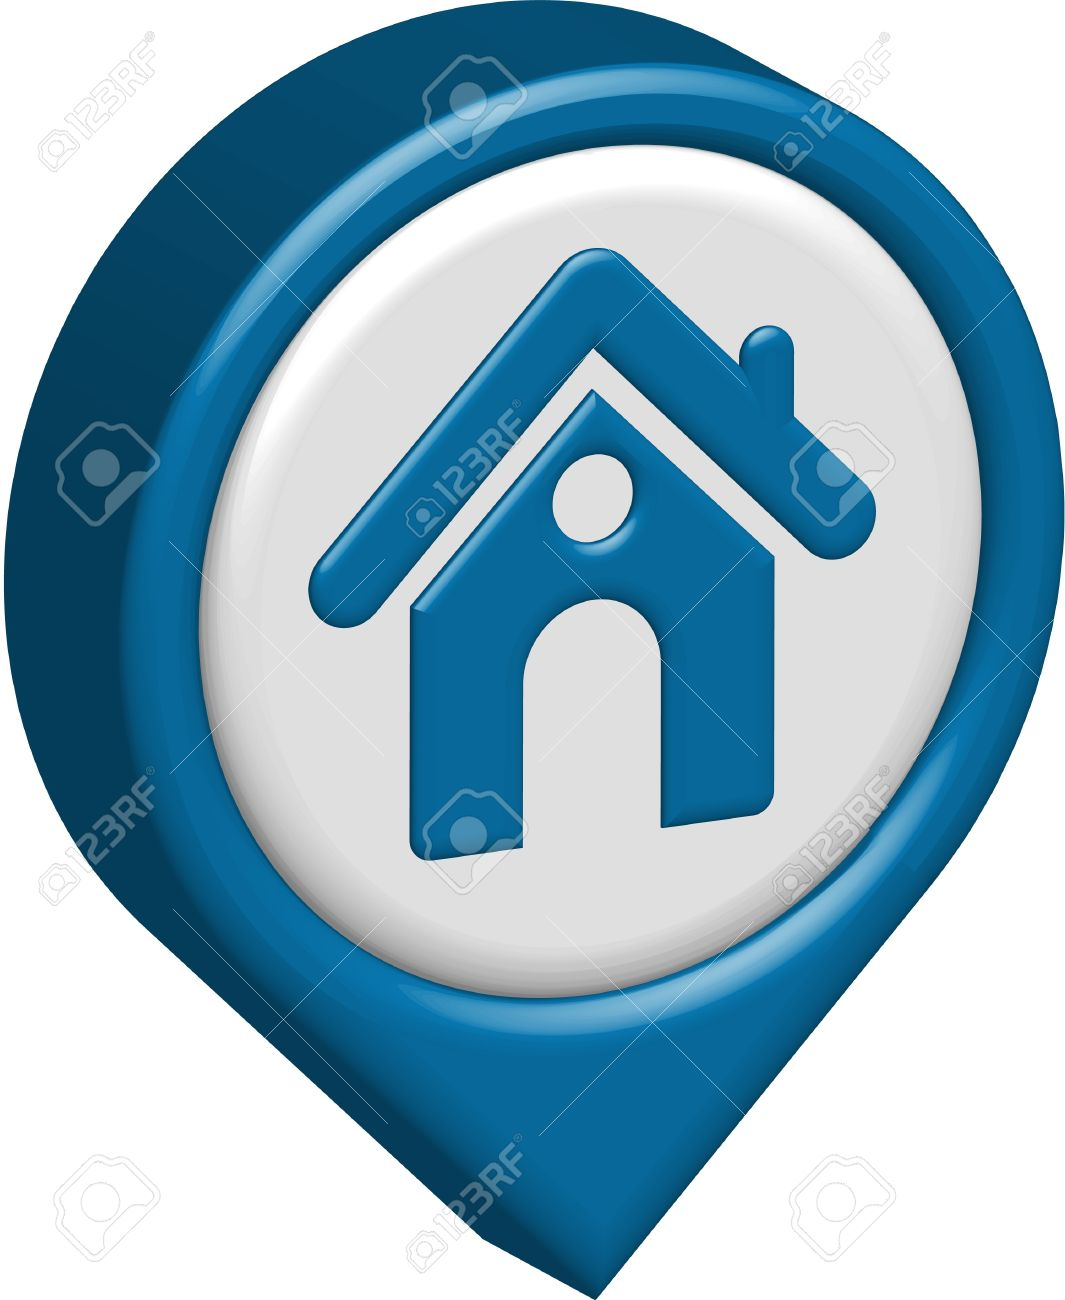 Blue Home Icon : Vector, Design, Isolated, White., Royalty, Cliparts,, Vectors,, Stock, Illustration., Image, 12492013.